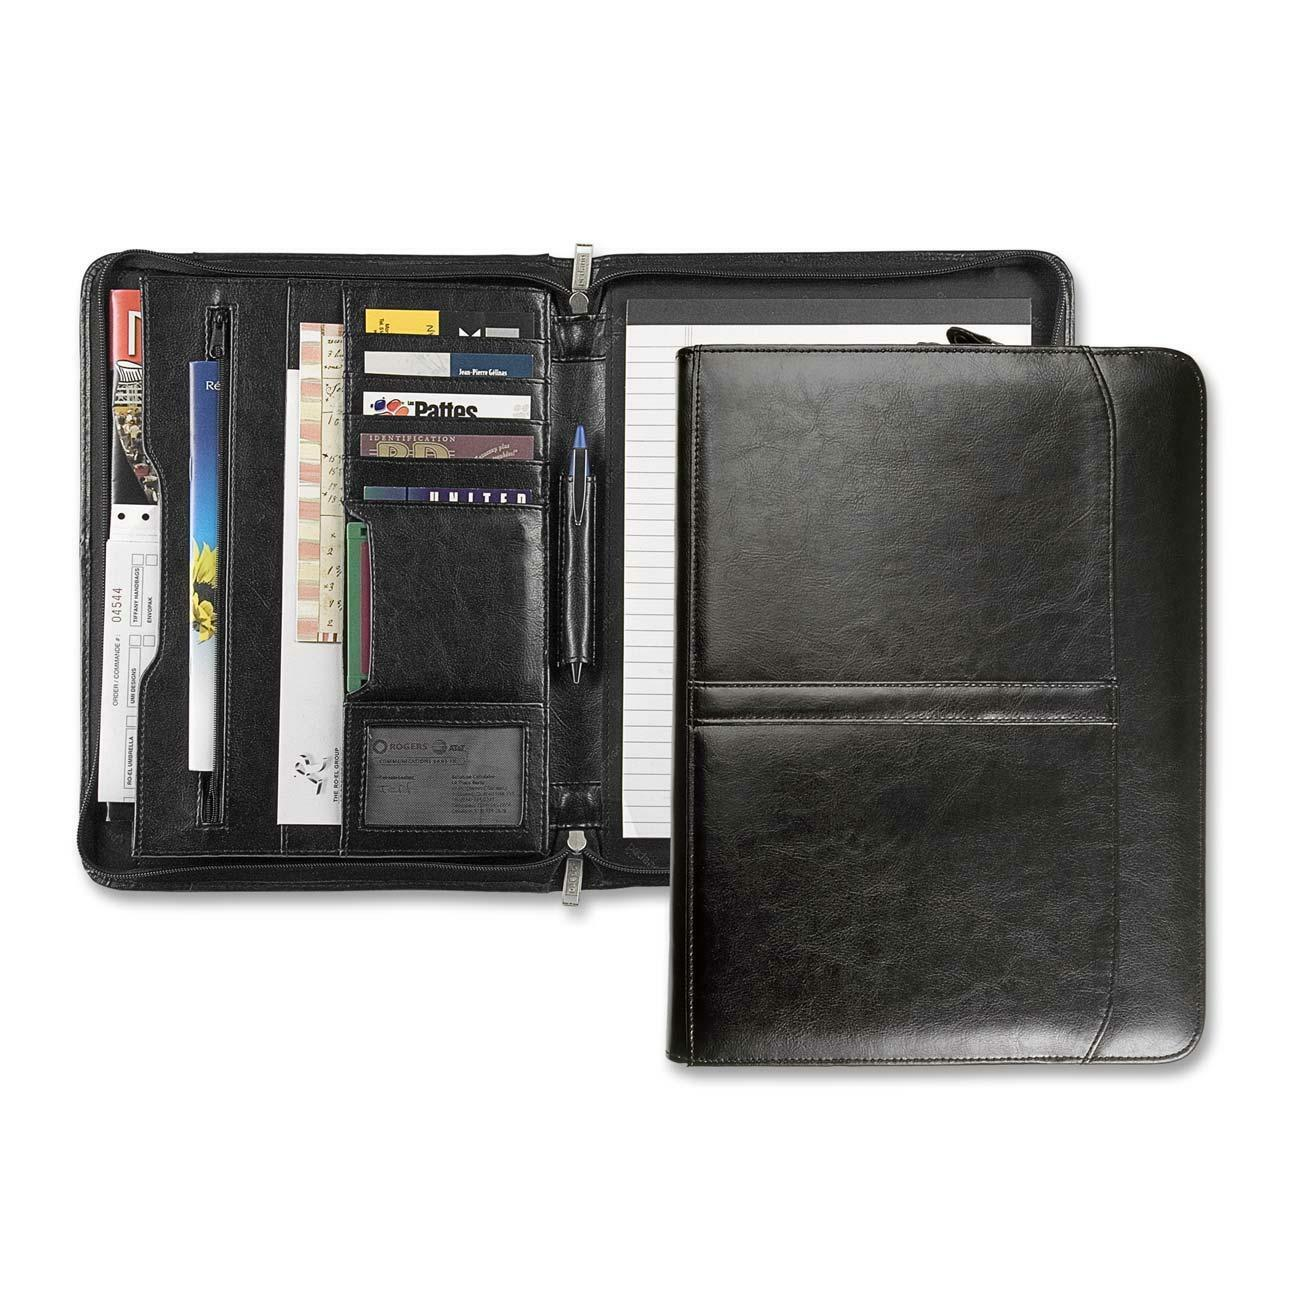 Ro-el 3-Point Zipper Leather Portfolio, Black Leather